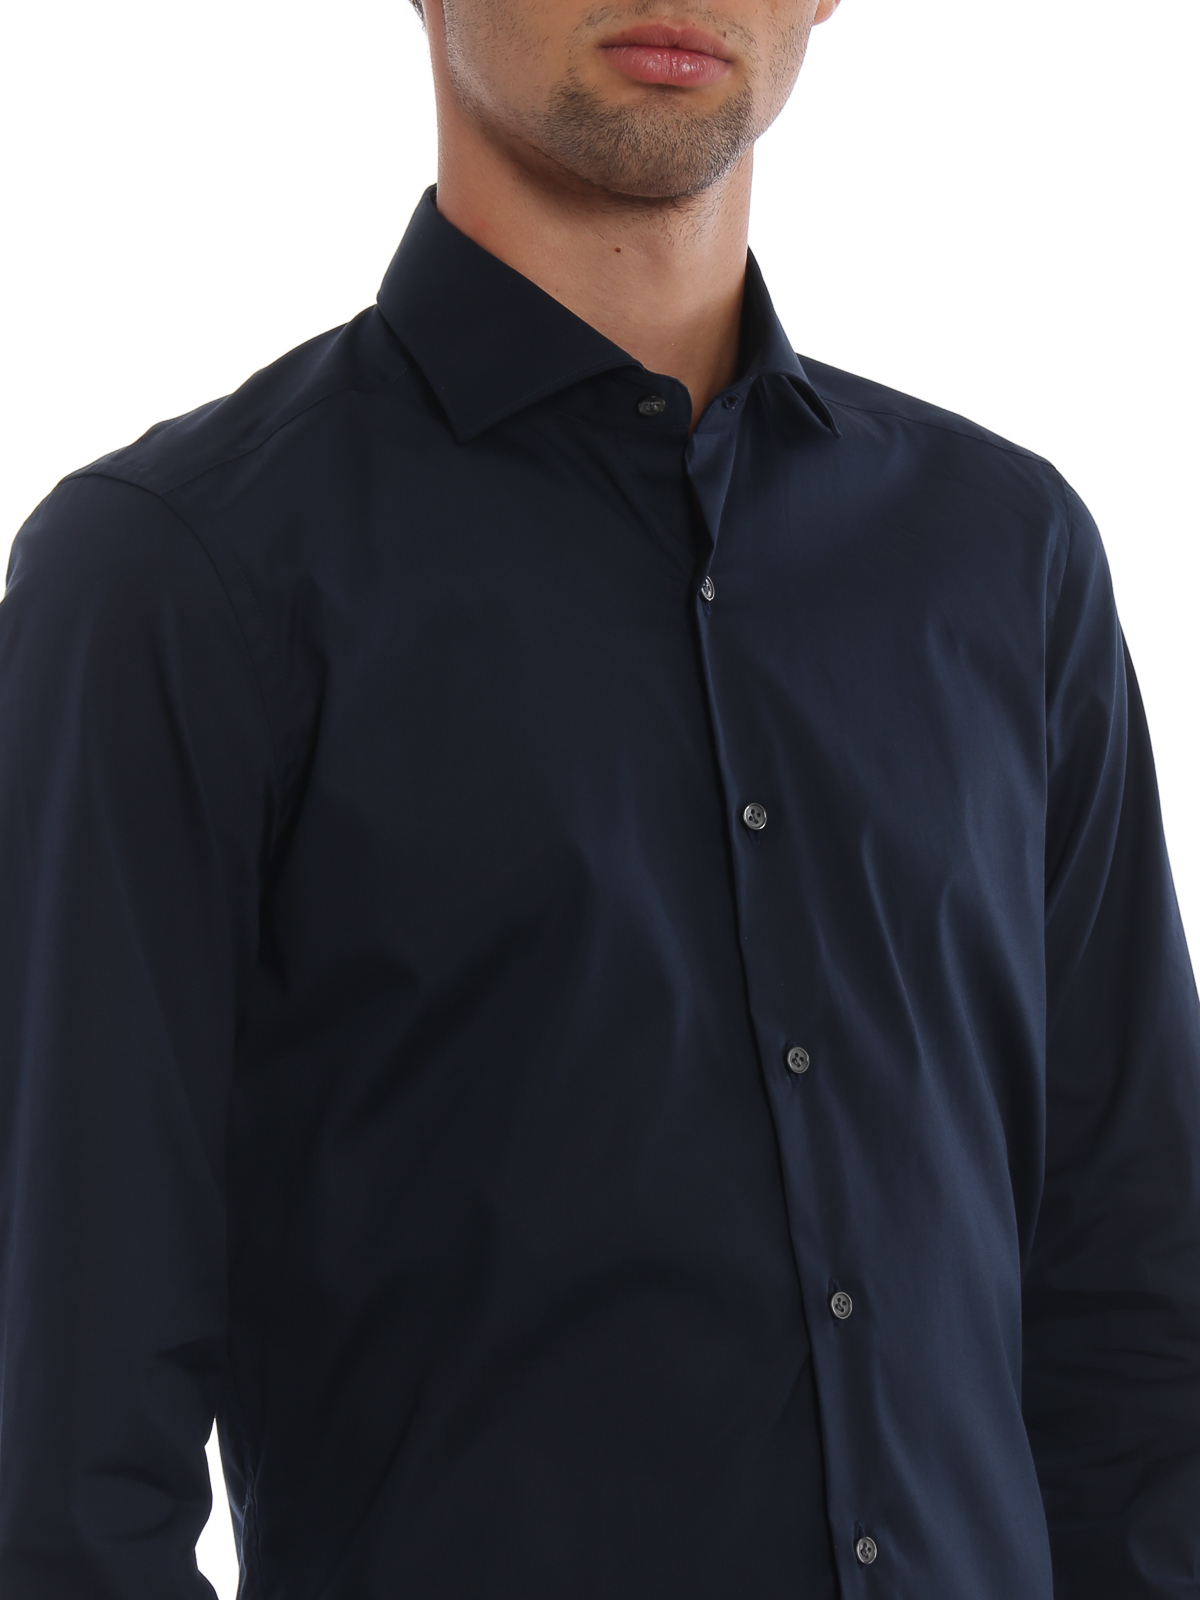 dd52082c21b5 Fay - Dark blue stretch cotton poplin shirt - shirts ...